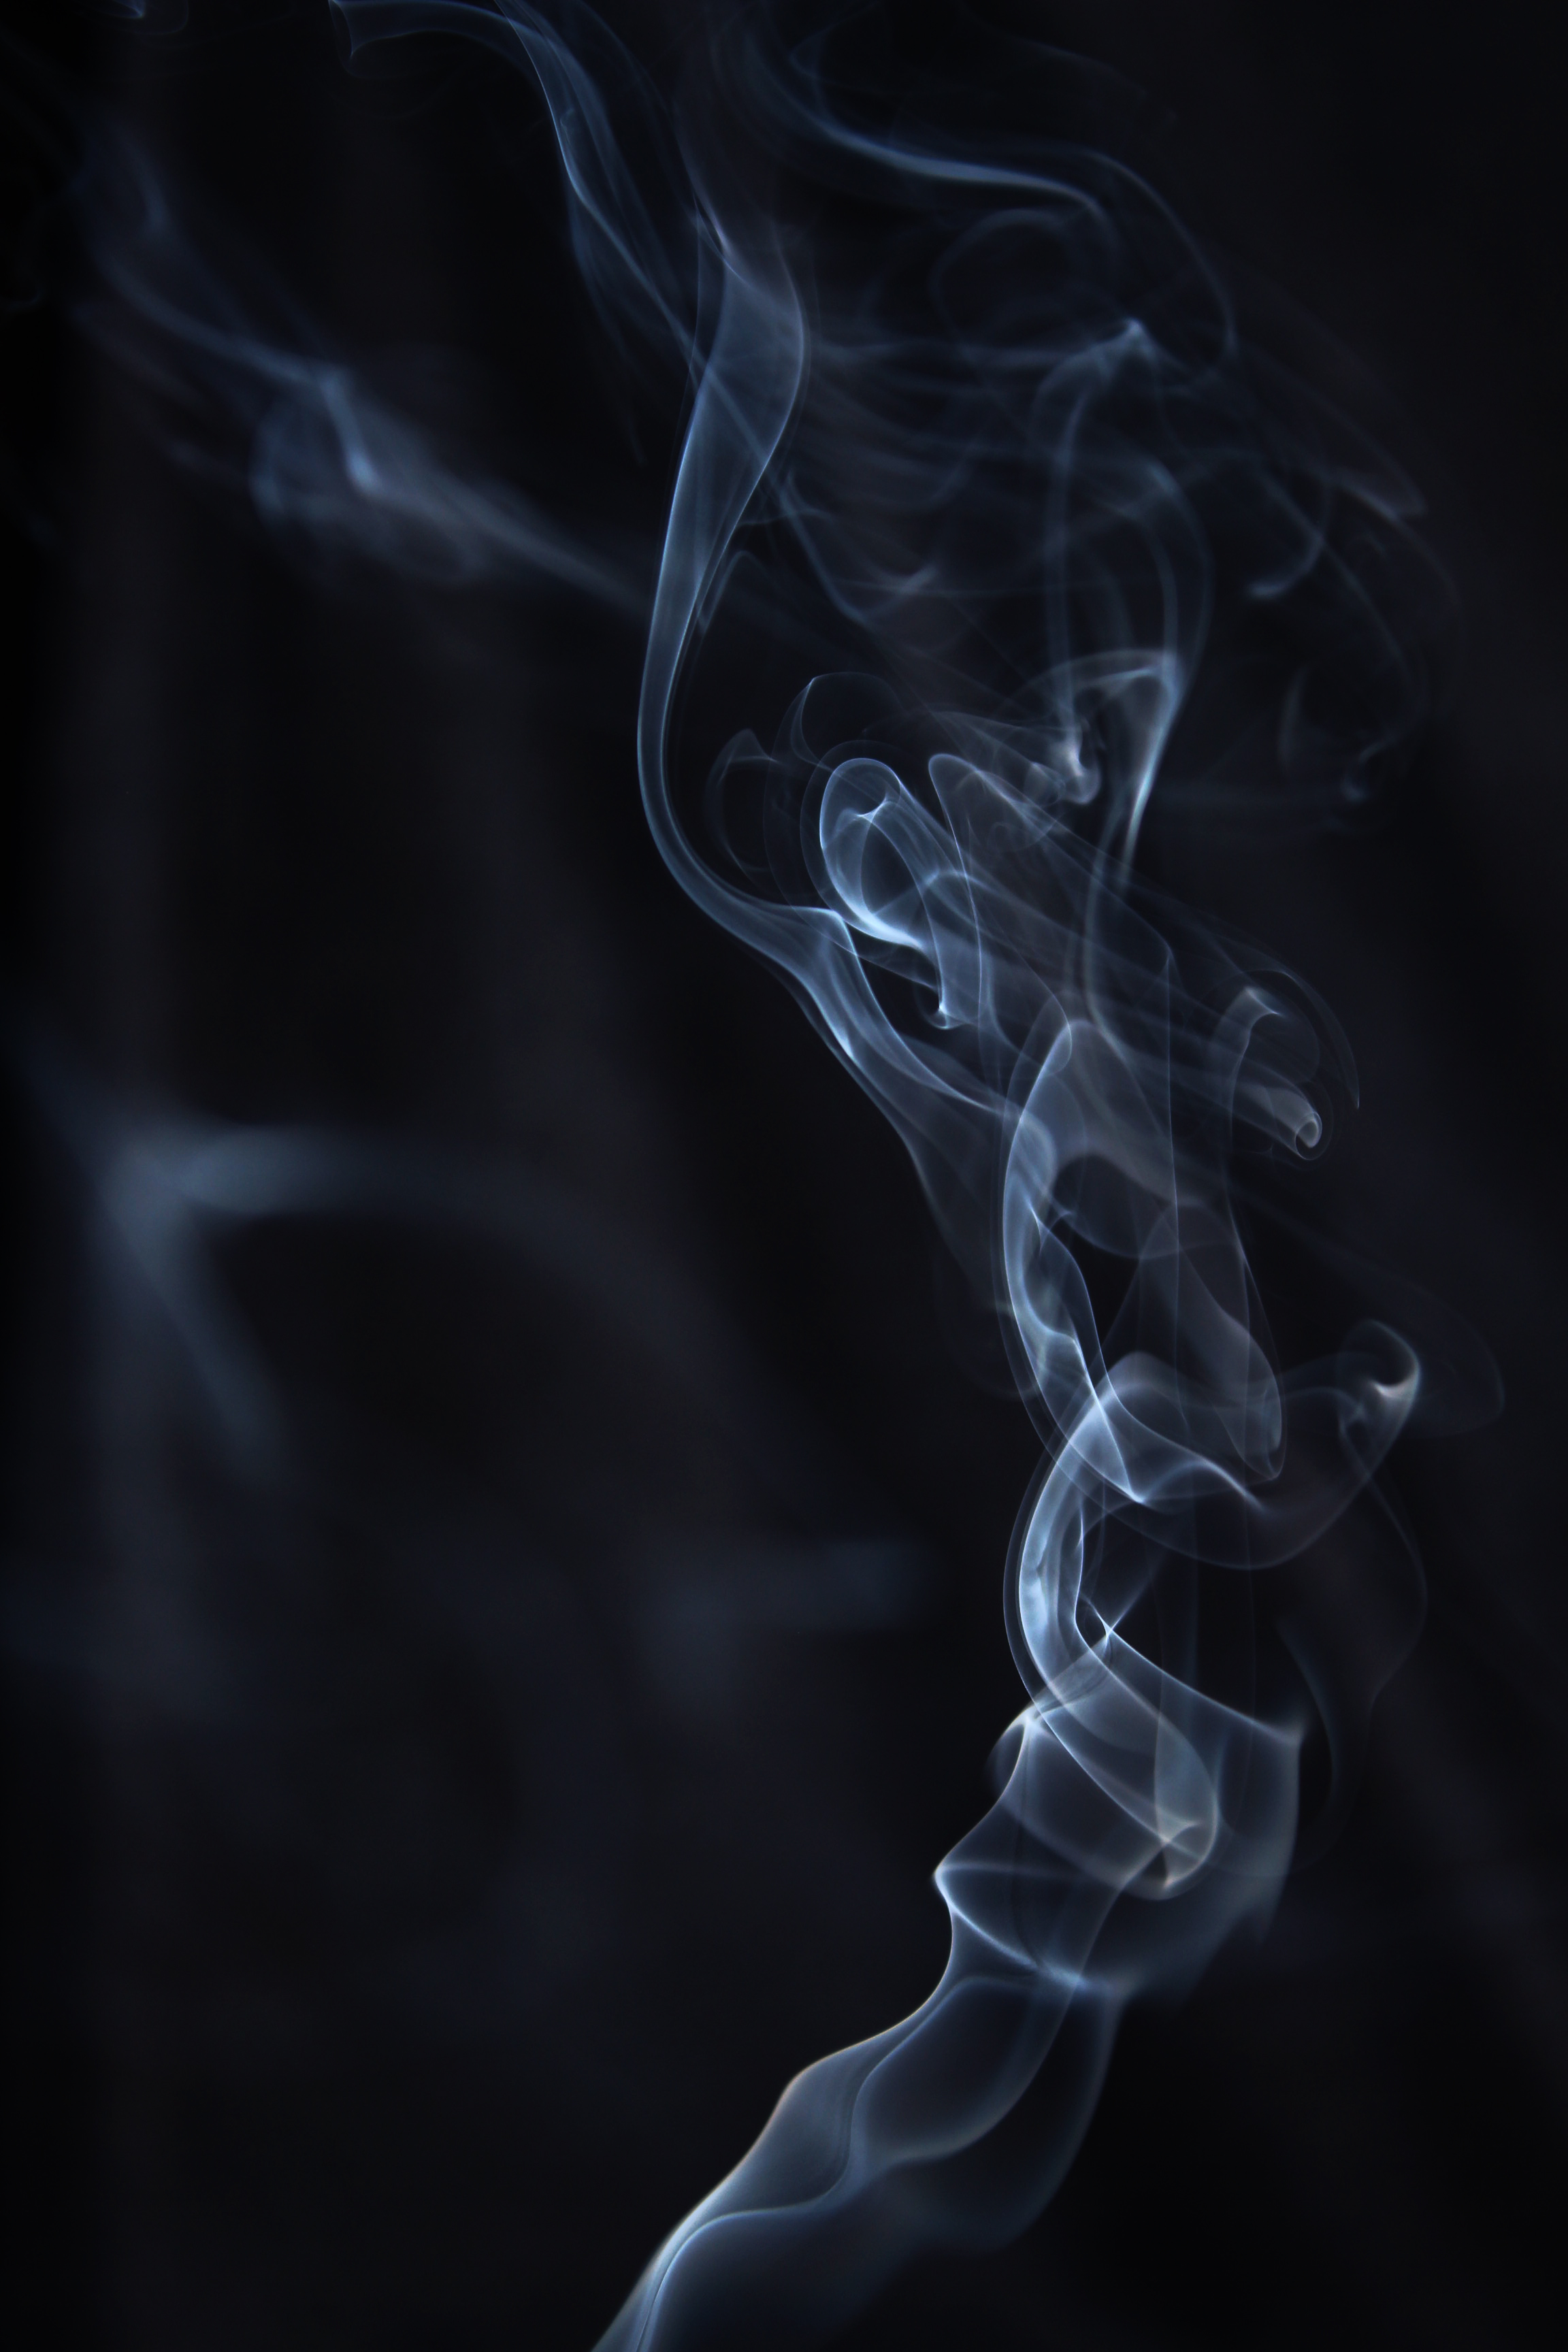 Smoke Effect Picsart Background Images Smoke